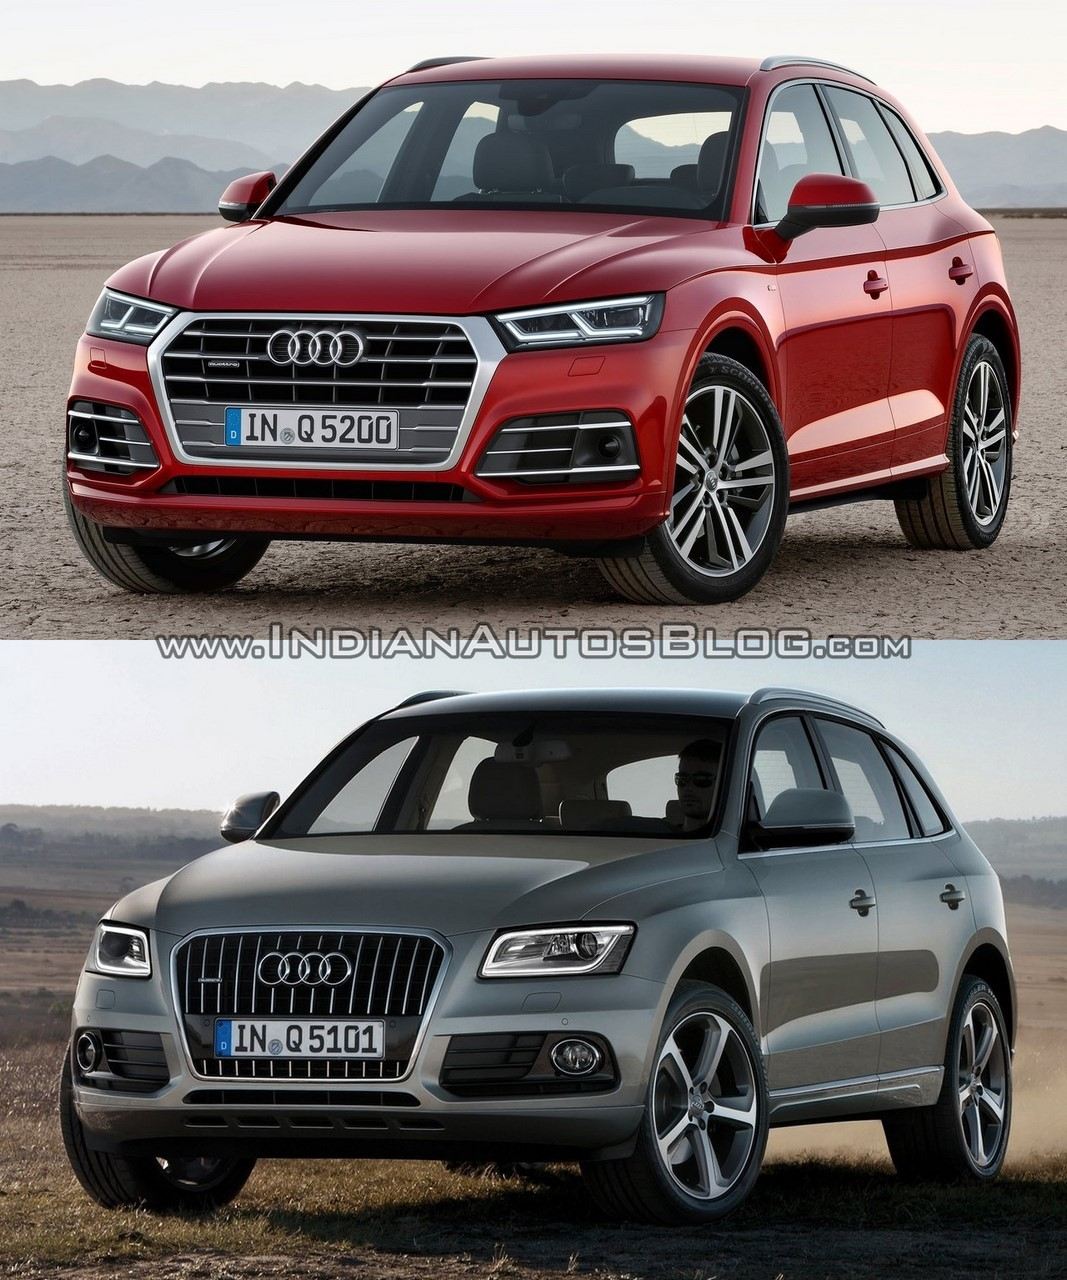 2017 Audi Q5 Vs 2013 Audi Q5 In Images